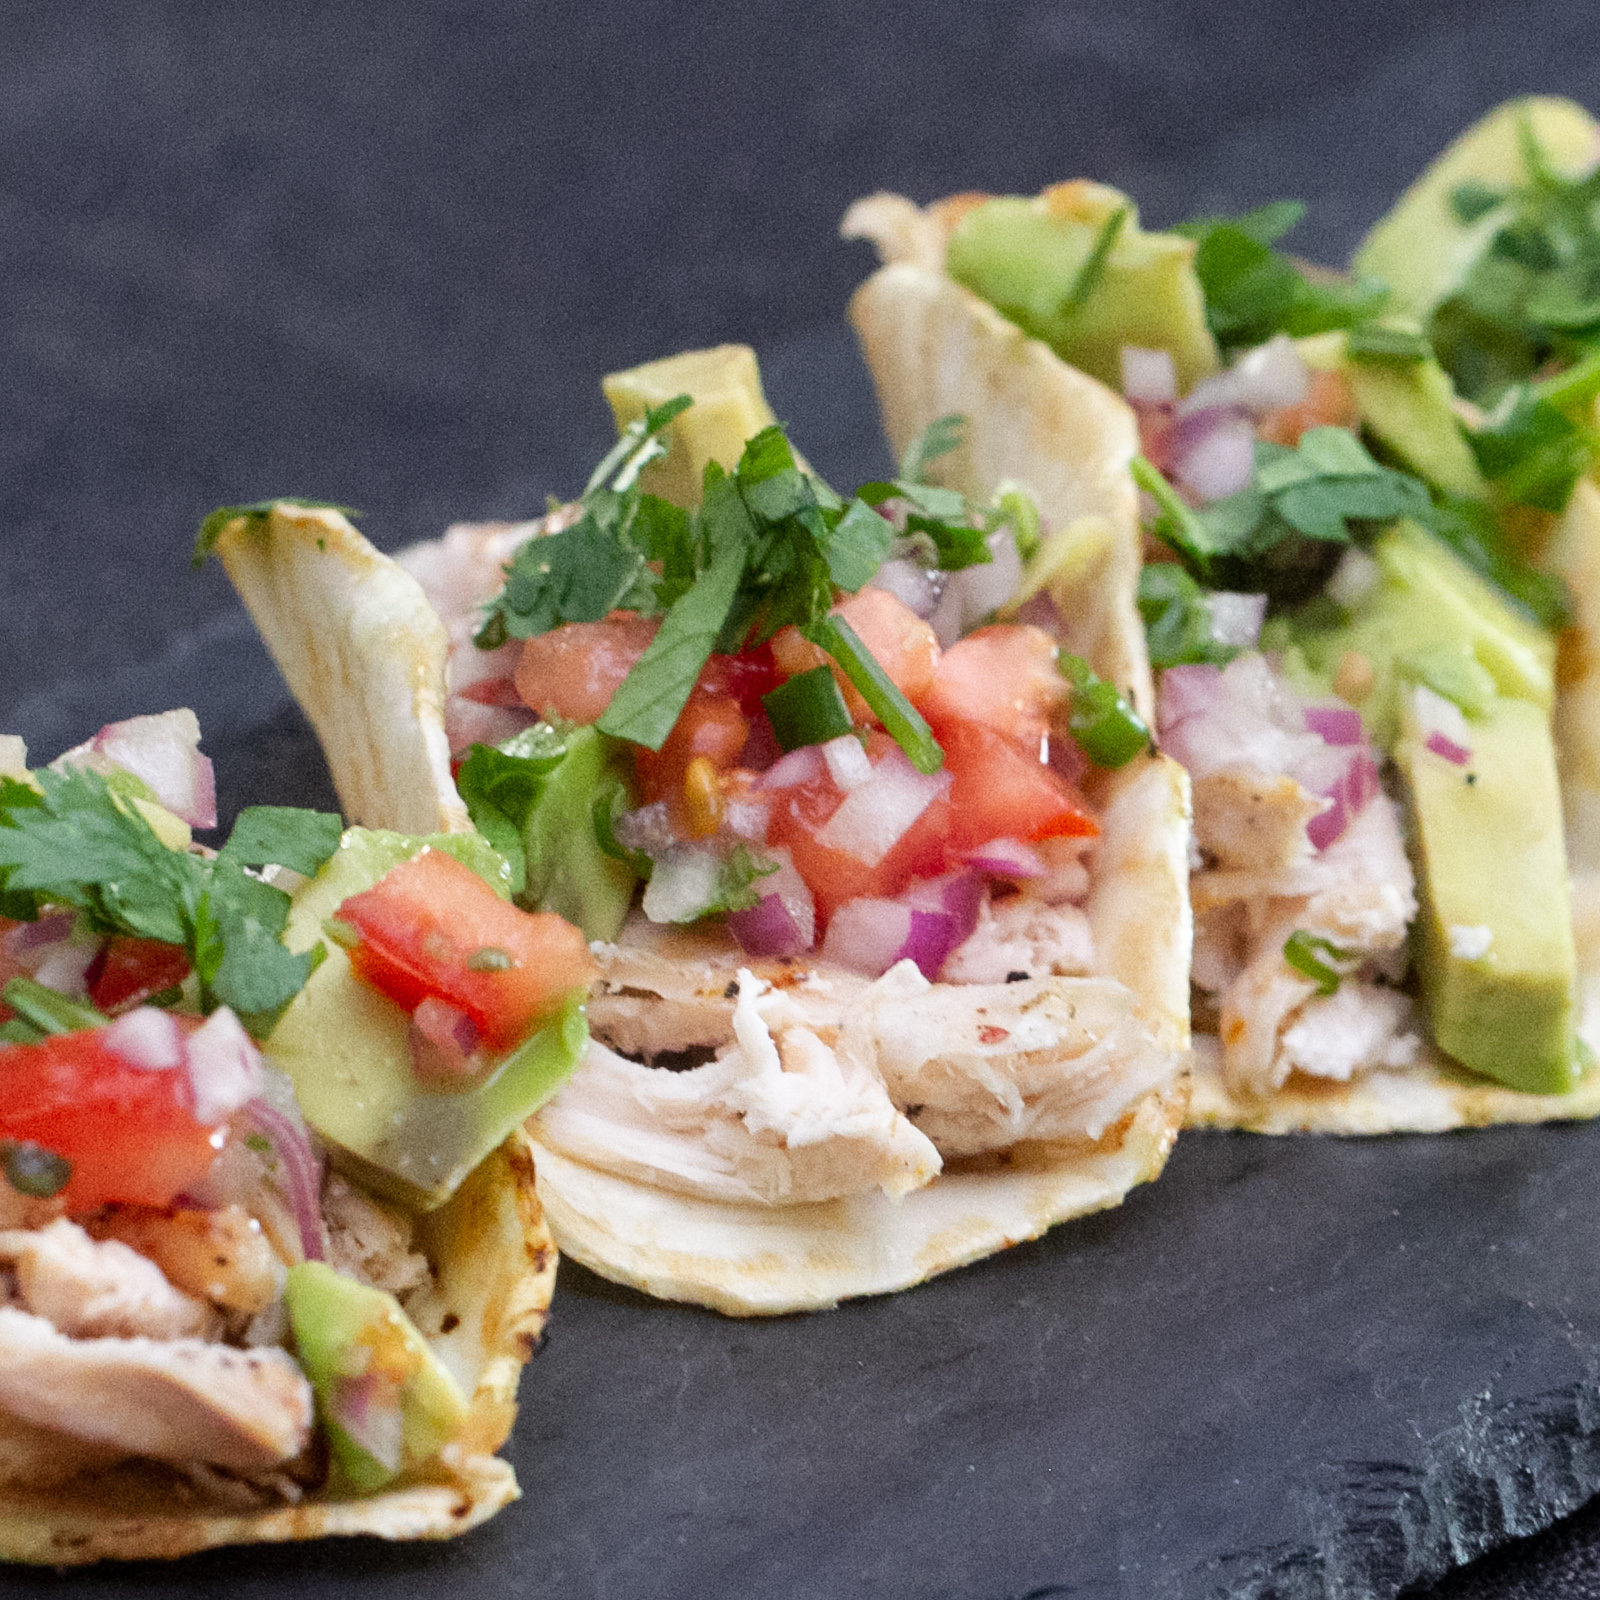 Grilled Chicken Tacos With Celery Root